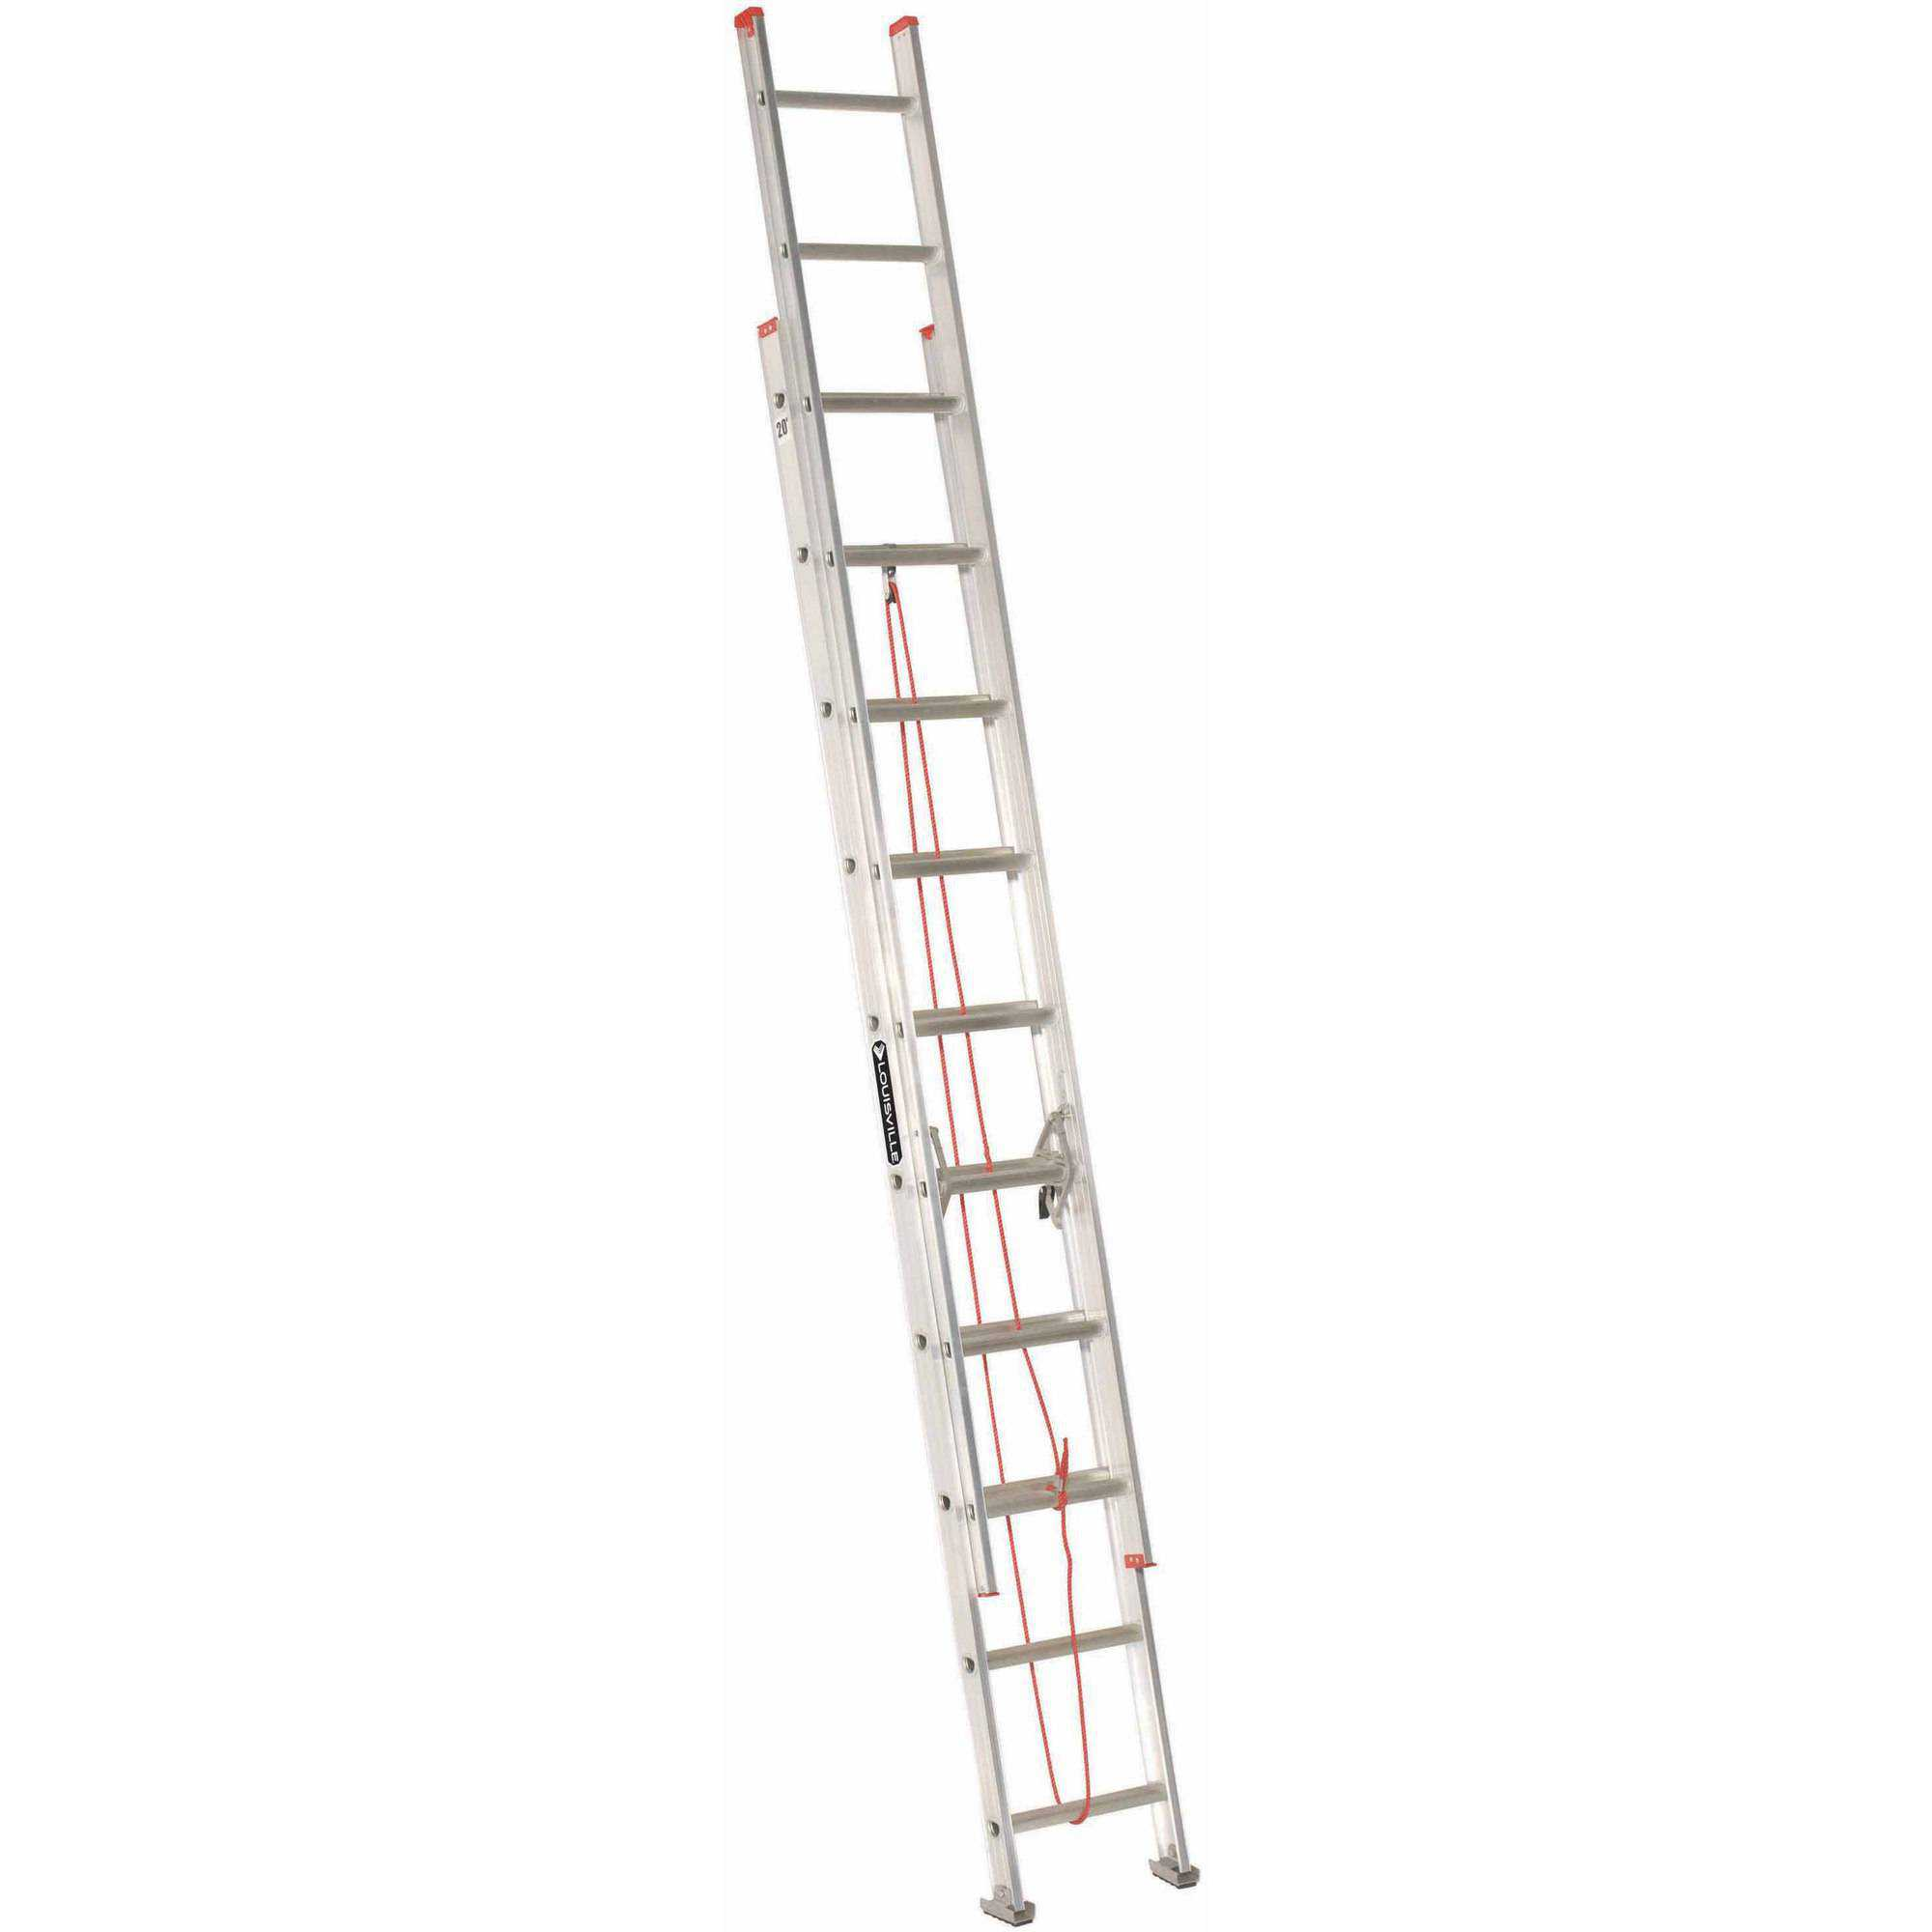 Louisville Ladder L-2324-20 20 ft. Aluminum Extension Ladder, Type III, 200 lbs Load Capacity